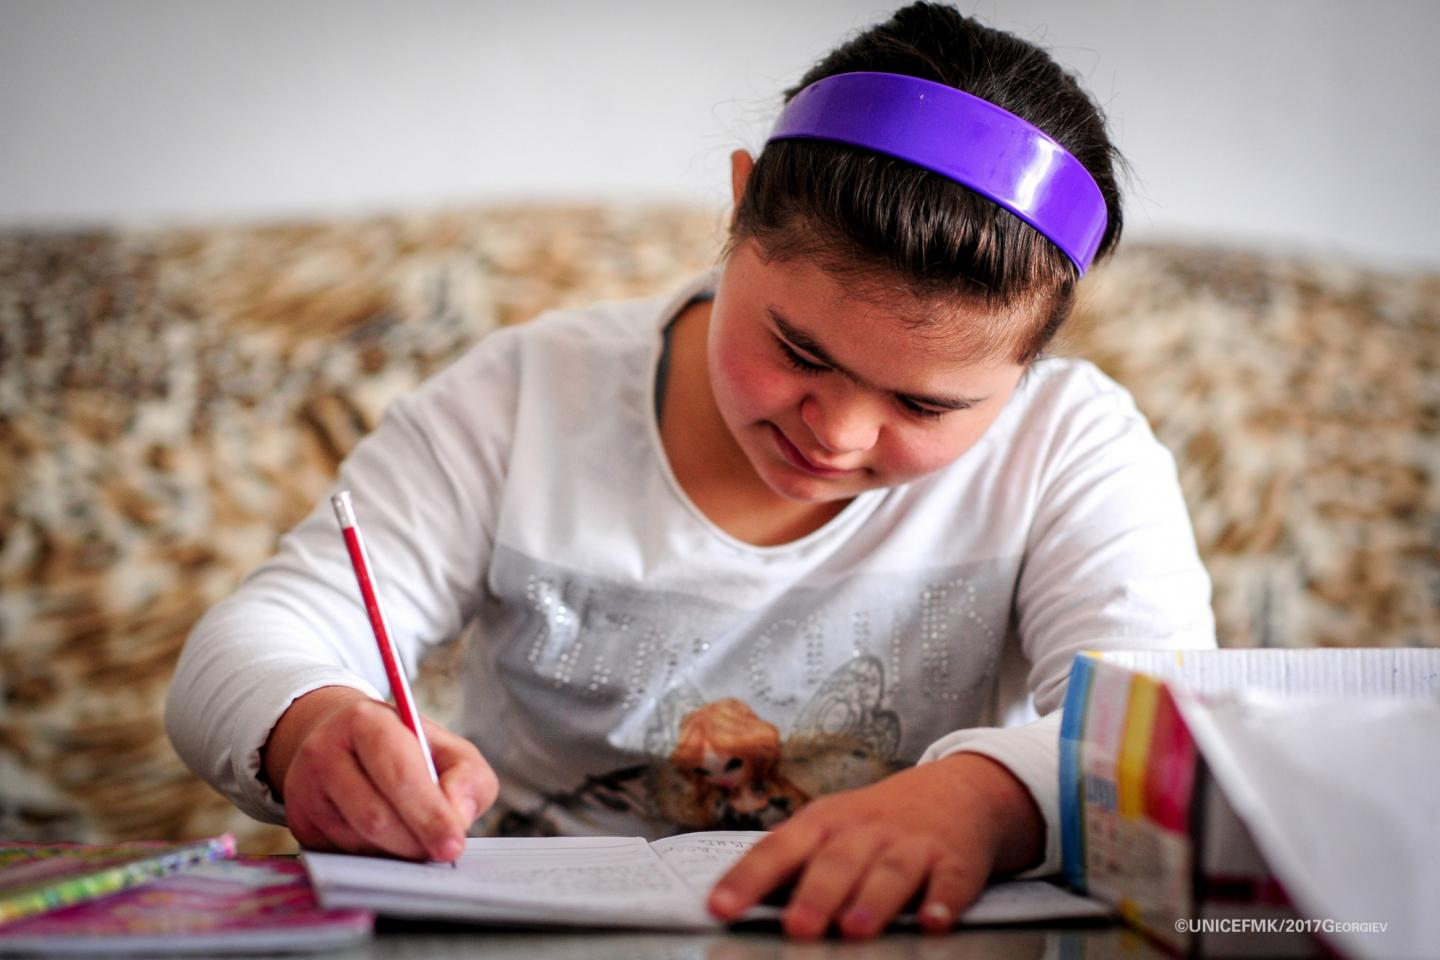 12 year old Stefanija who has down syndrome writes down in her notebook in the living room of her family house in Delcevo